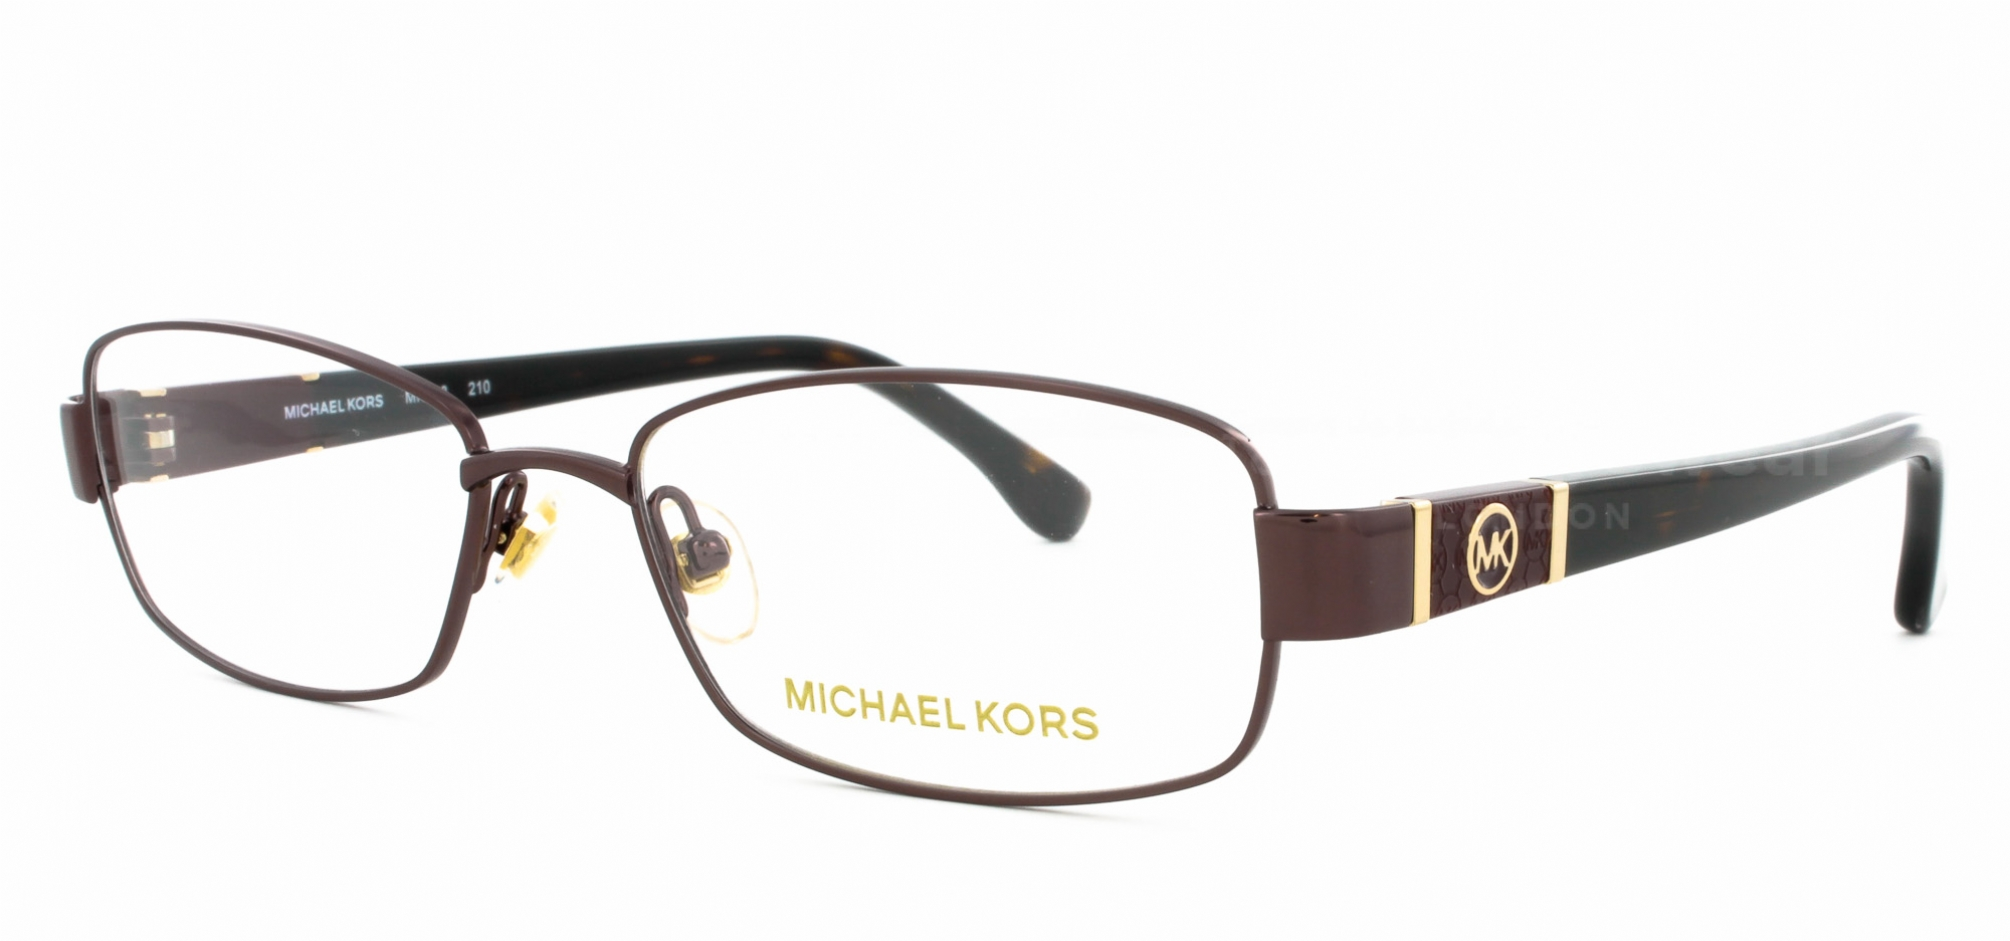 MICHAEL KORS 338 in color 210